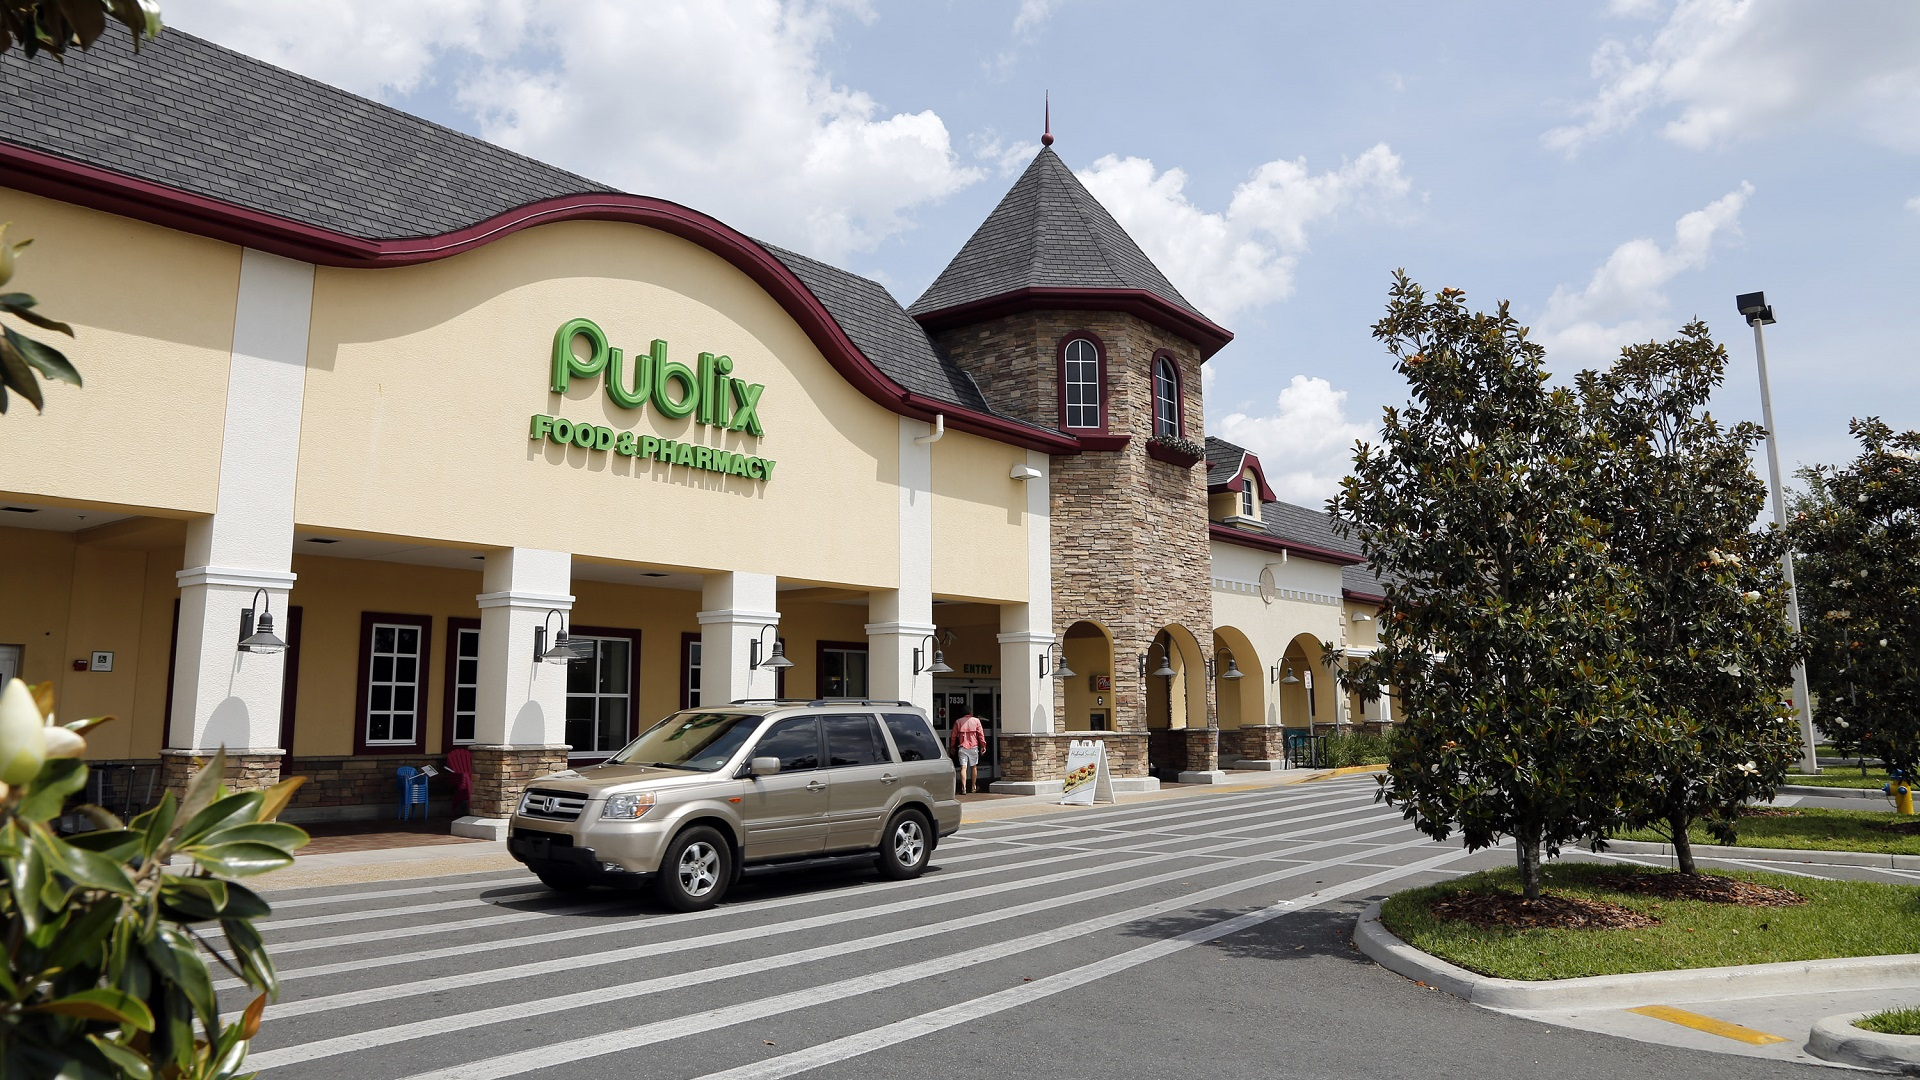 Publix will no longer require masks for vaccinated customers, employees